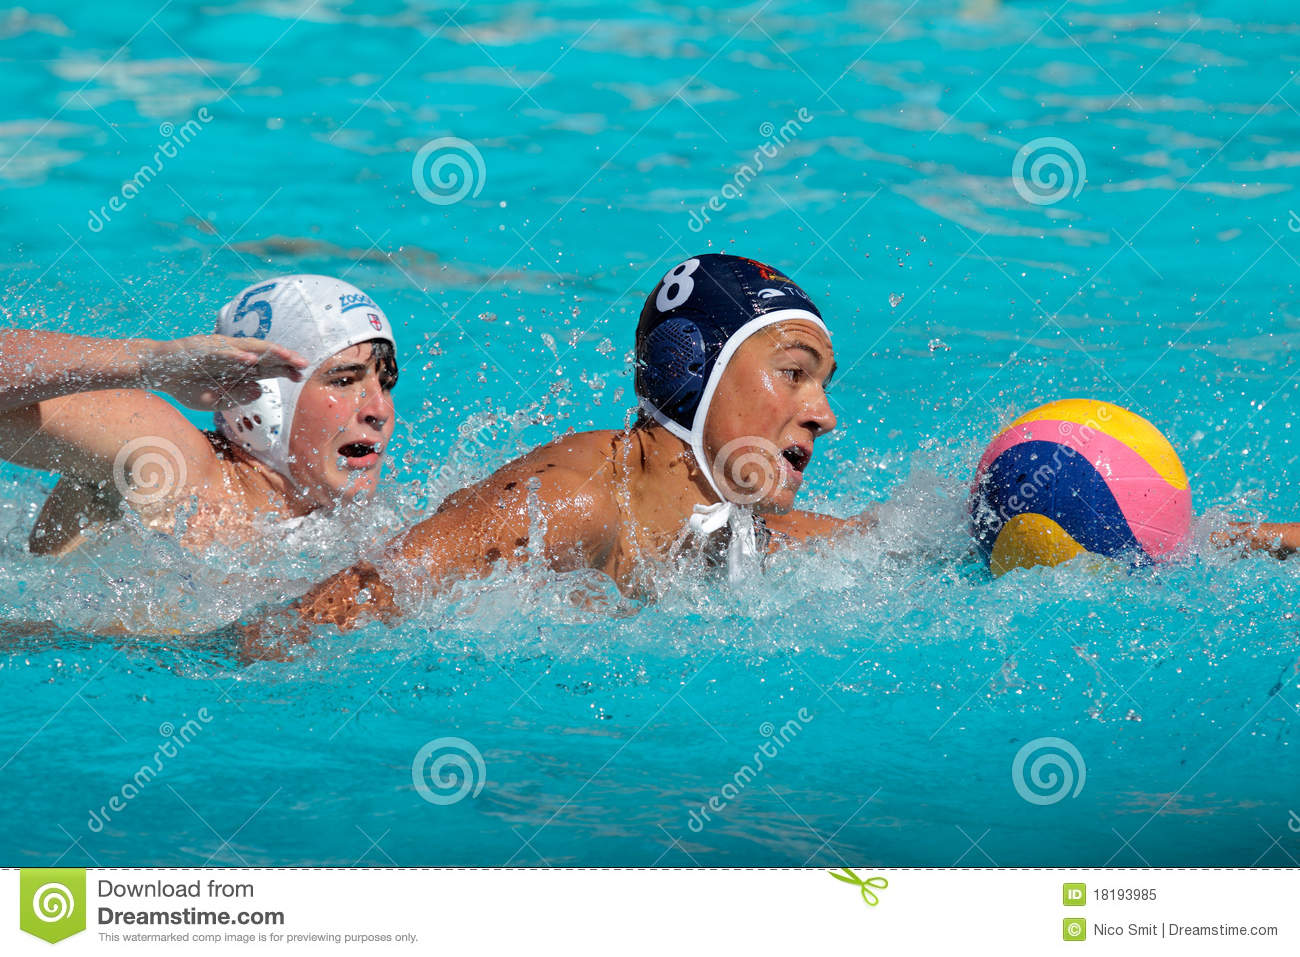 ... water polo tournament, Bloemfontein, South Africa, 28-29 January 2011